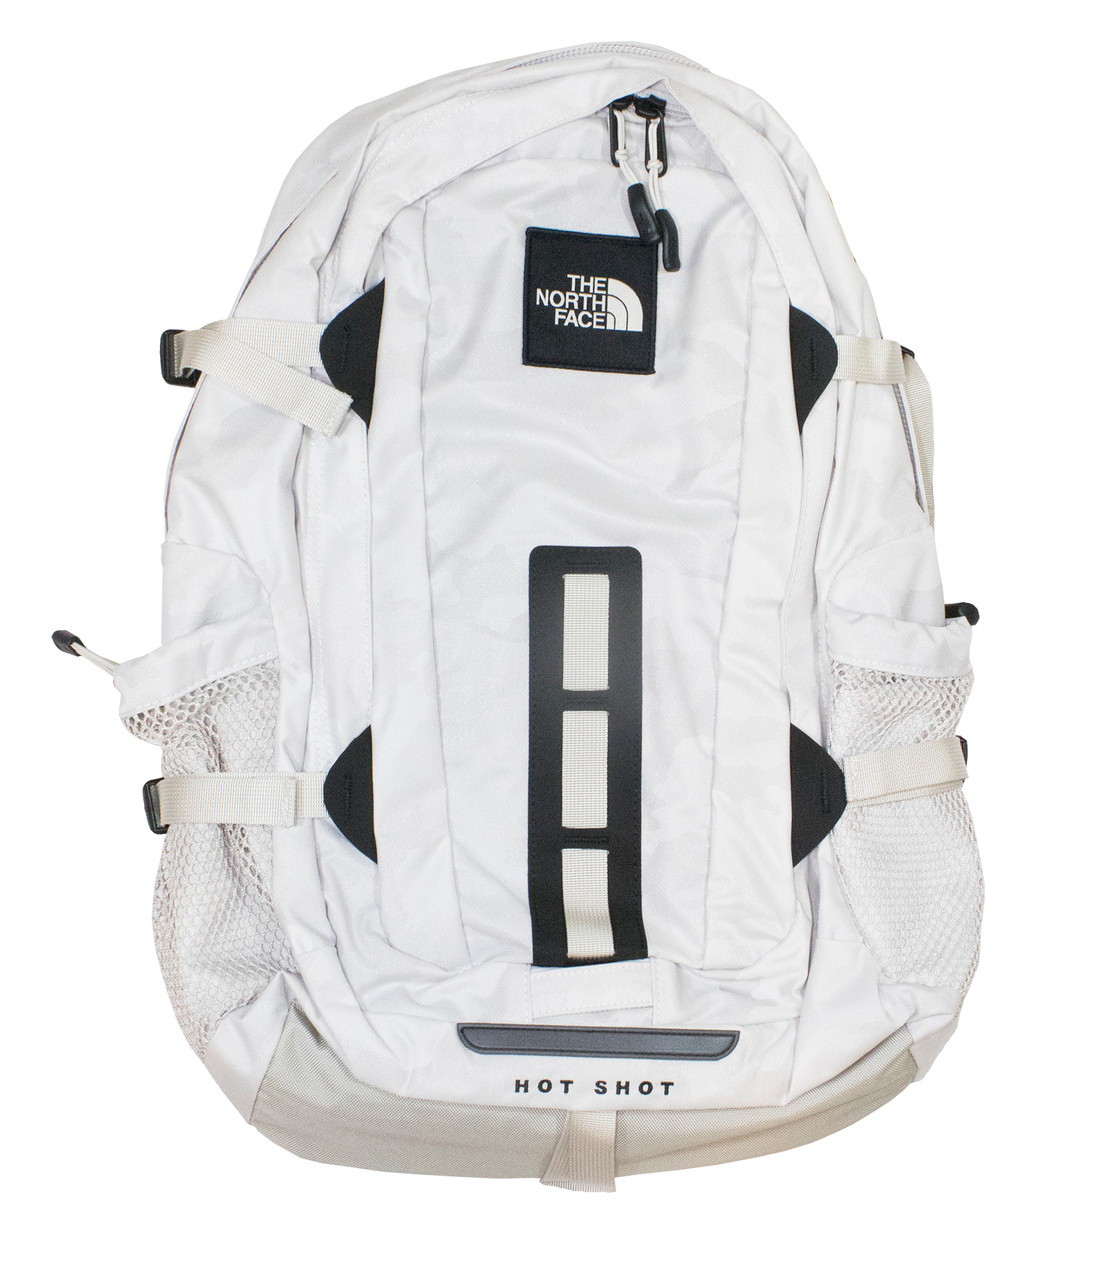 8ce918a1c Men's The North Face Hot Shot Limited Edition Backpack - Sieverts Sporting  Goods